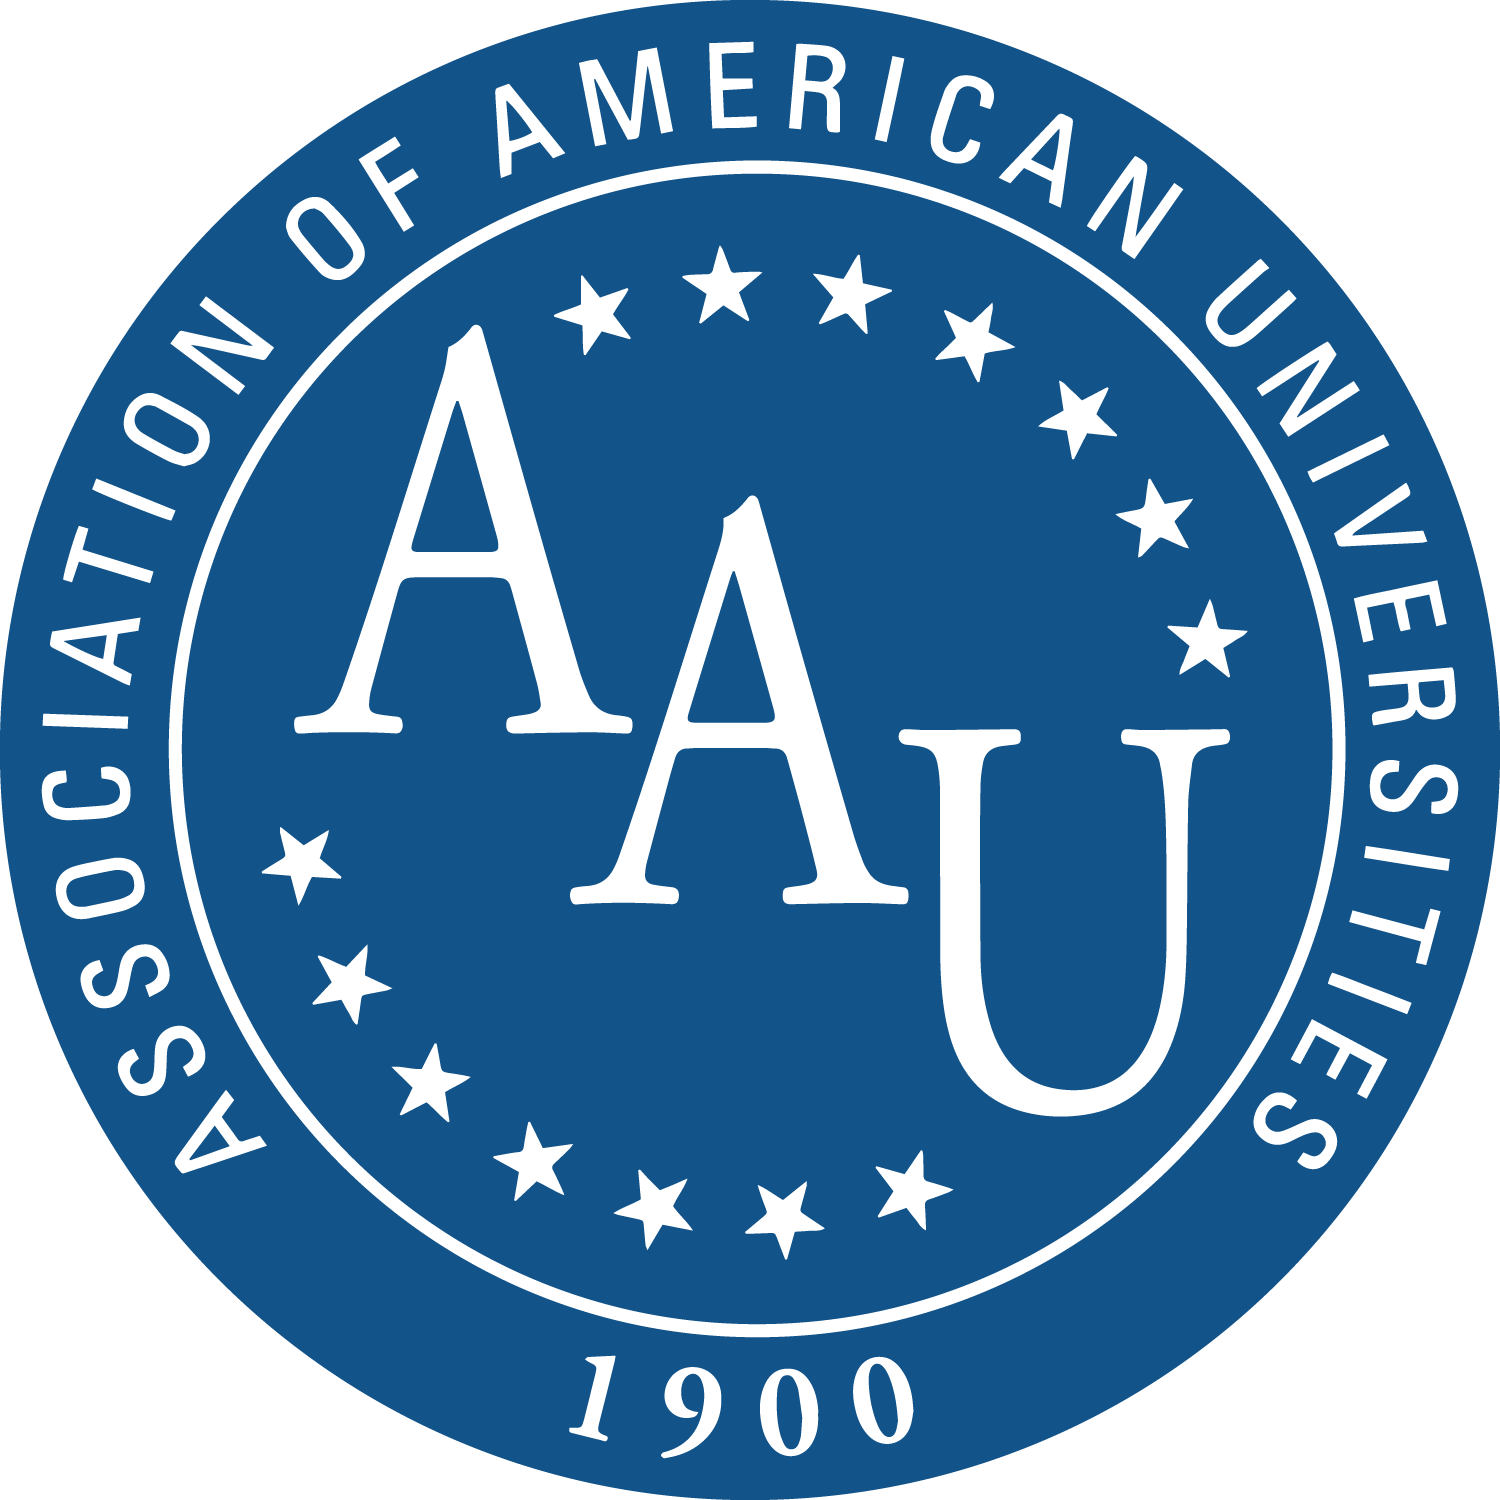 Association of American Universities University of Missouri College of Education